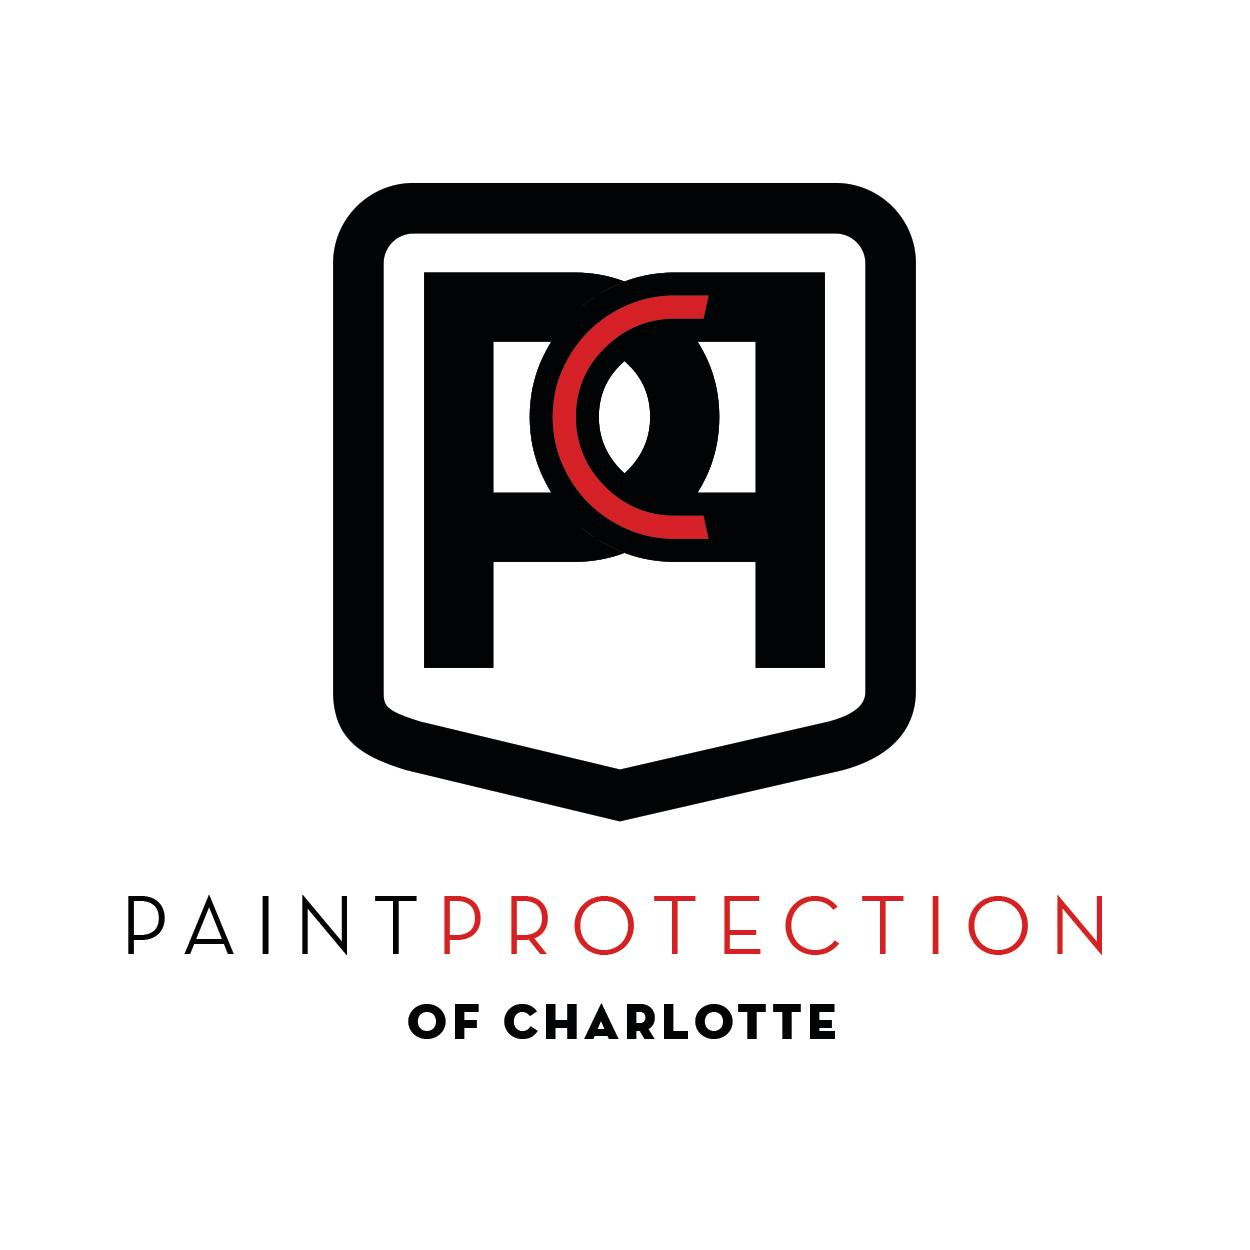 Paint Protection of Charlotte